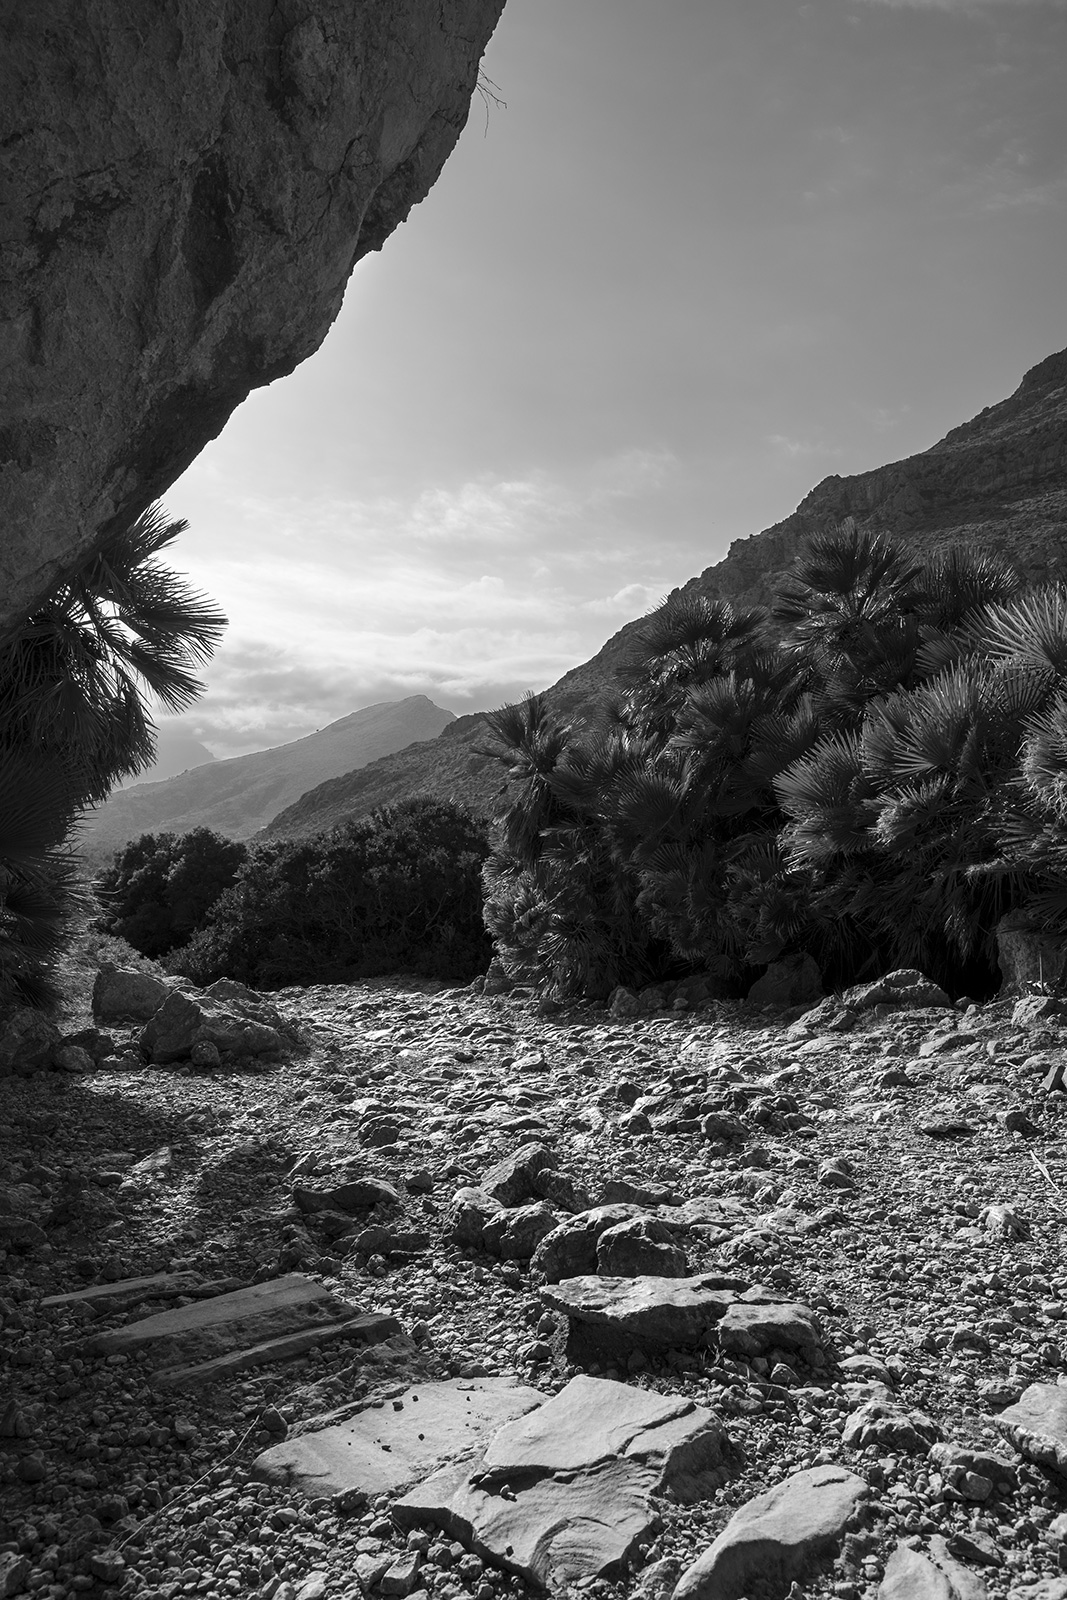 Rocky path under overhanging cliff by mediterranean plants and mountains in background, black and white landscape portrait Boquer Valley Mallorca Spain ©P.Maton 2019 eyeteeth.net